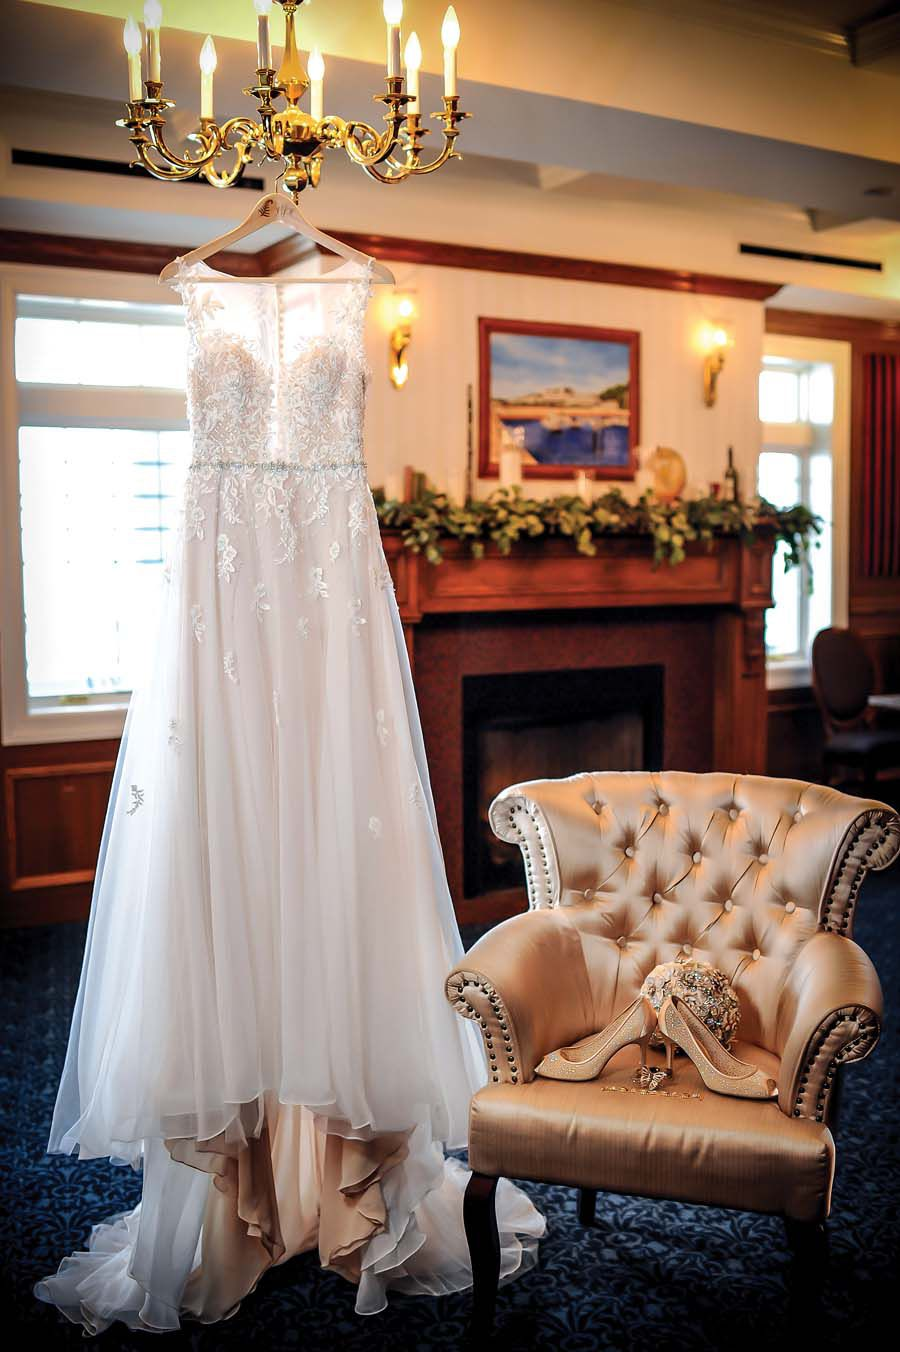 Brides Gown at Madison Beach Hotel - Pearl Weddings & Events